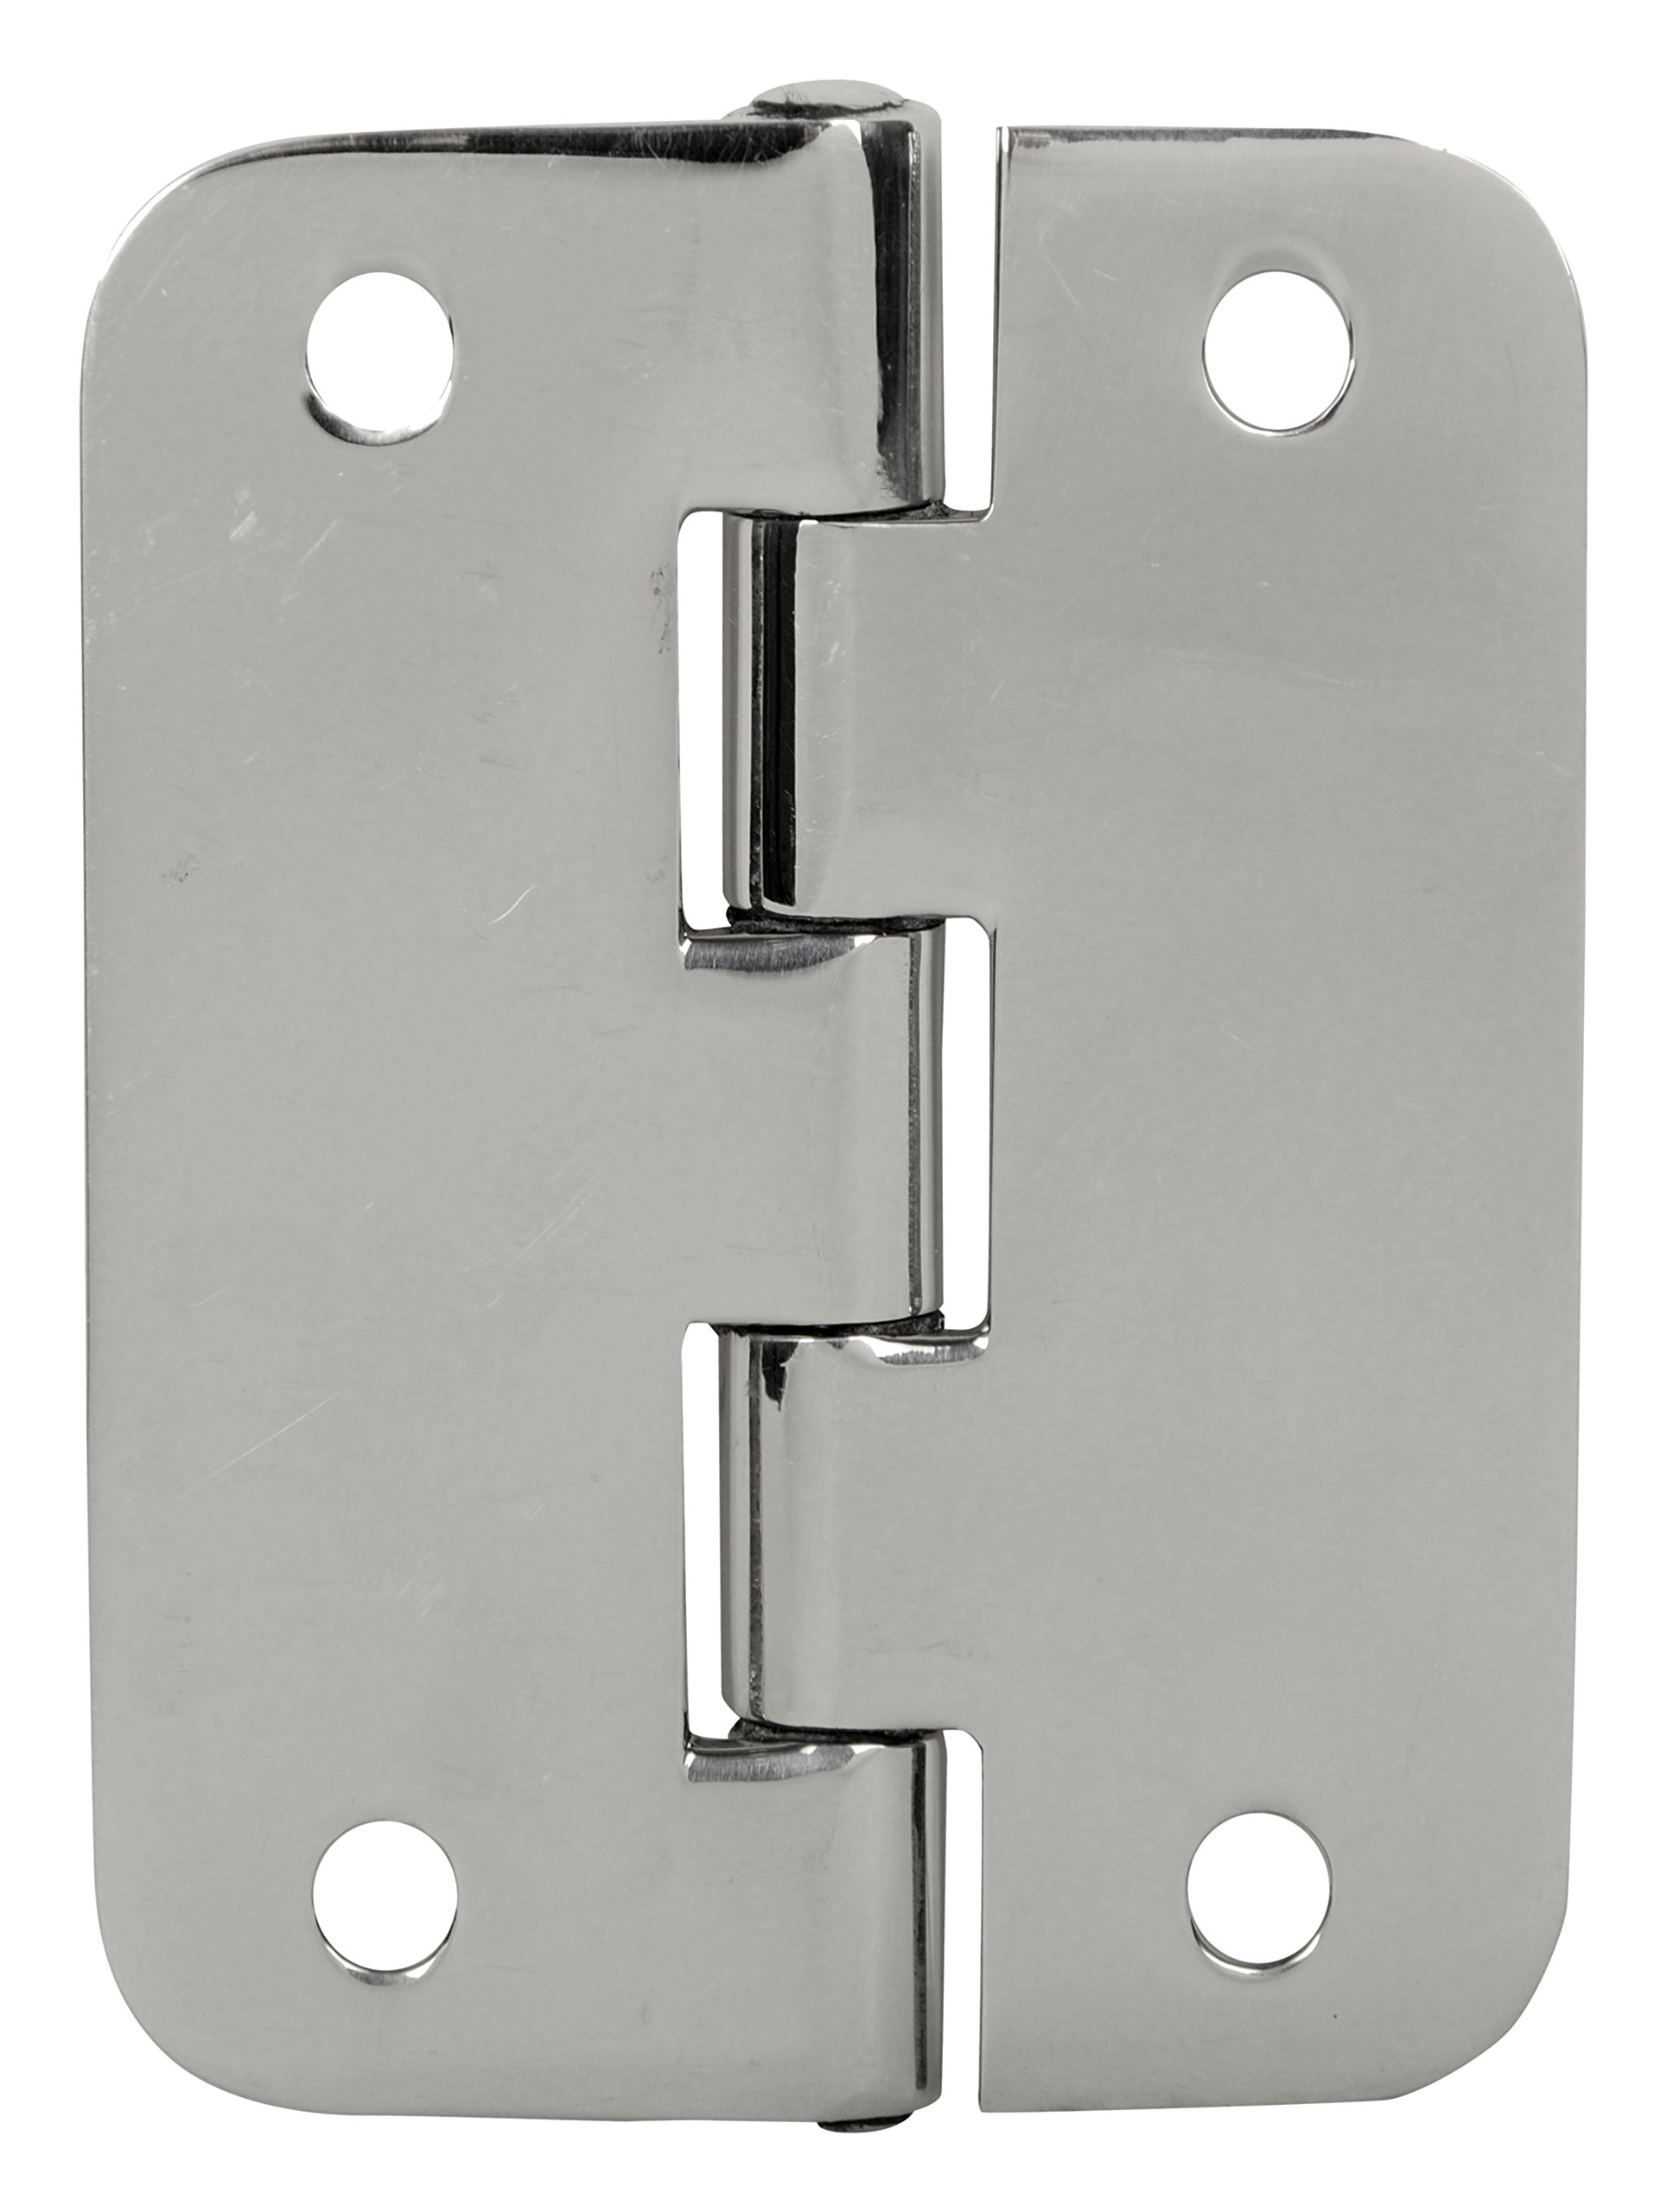 Cooler Hinge Set of 2 PCS Stainless Steel Bright Mirror Polished Life TIME Durable ICE Chest Replacement Hinge 8 pcs Stainless Steel Screws) by SS iSKCON (Image #6)